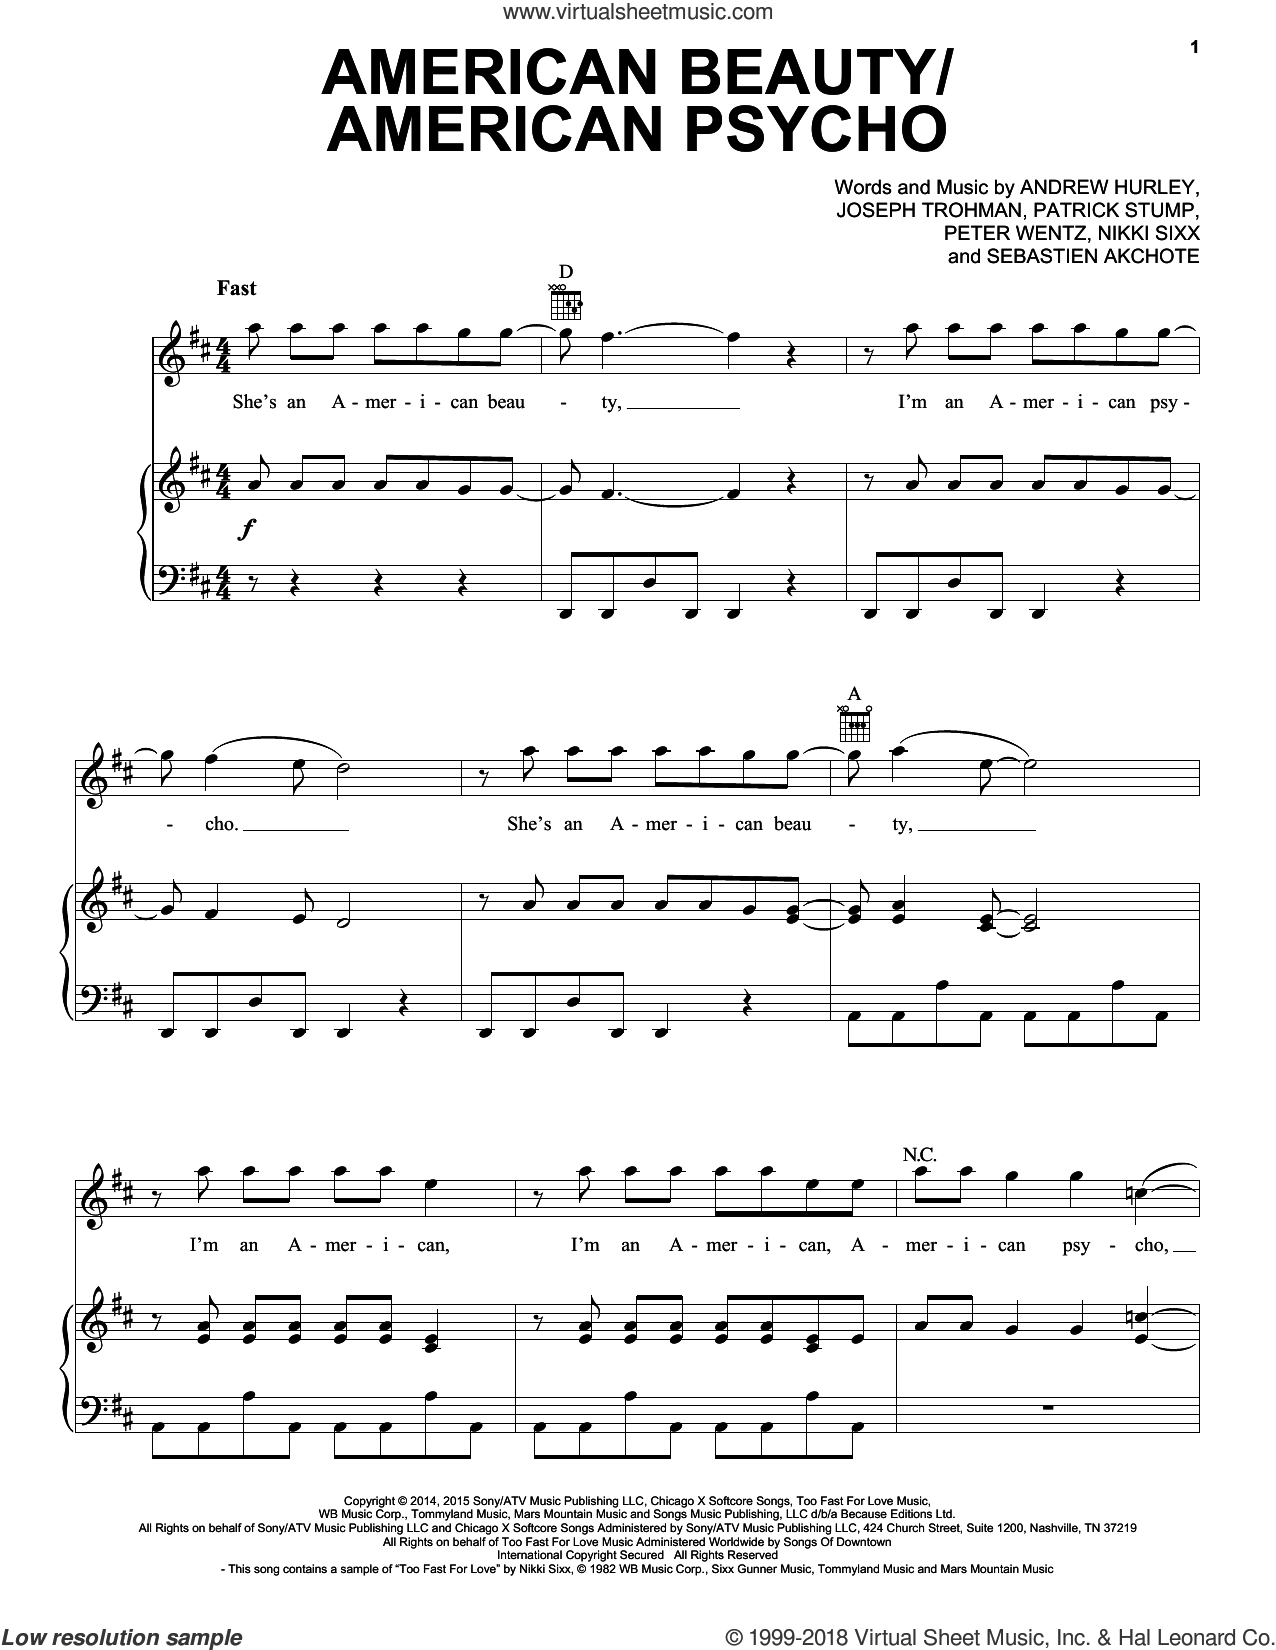 American Beauty/American Psycho sheet music for voice, piano or guitar by Fall Out Boy, Andrew Hurley, Joseph Trohman, Nikki Sixx, Patrick Stump, Peter Wentz and Sebastien Akchote, intermediate skill level